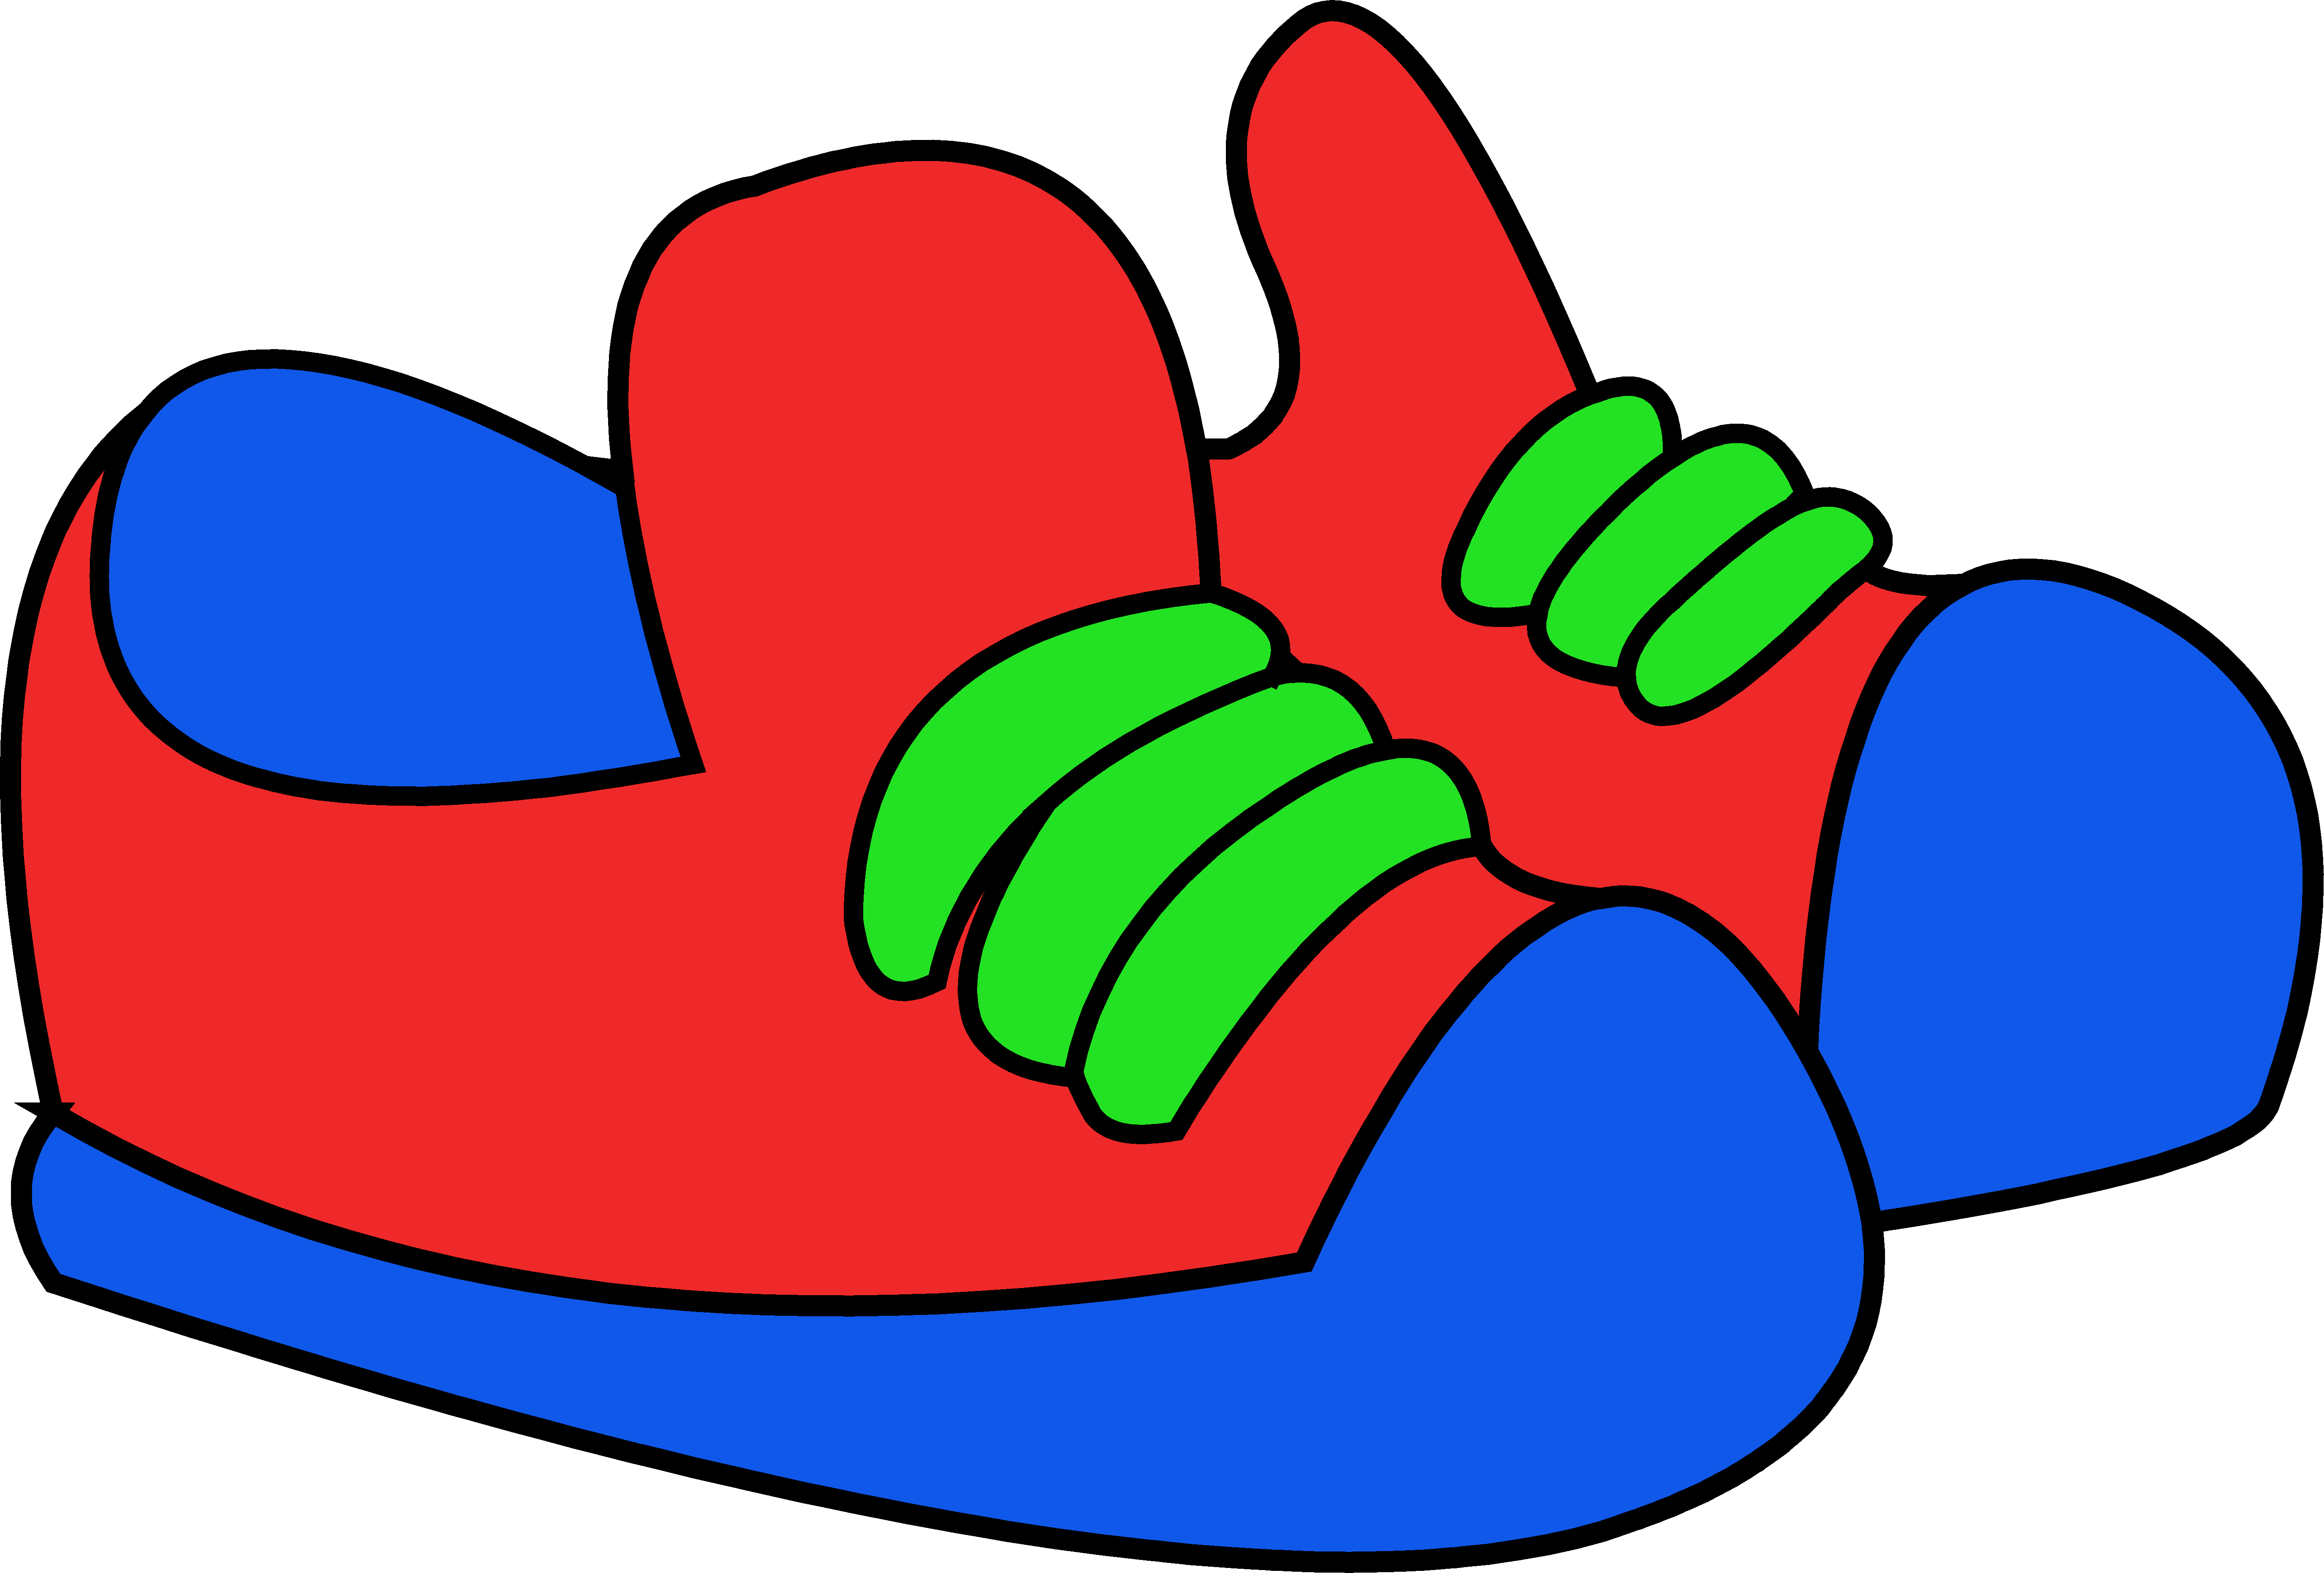 Red Sneakers Clip Art